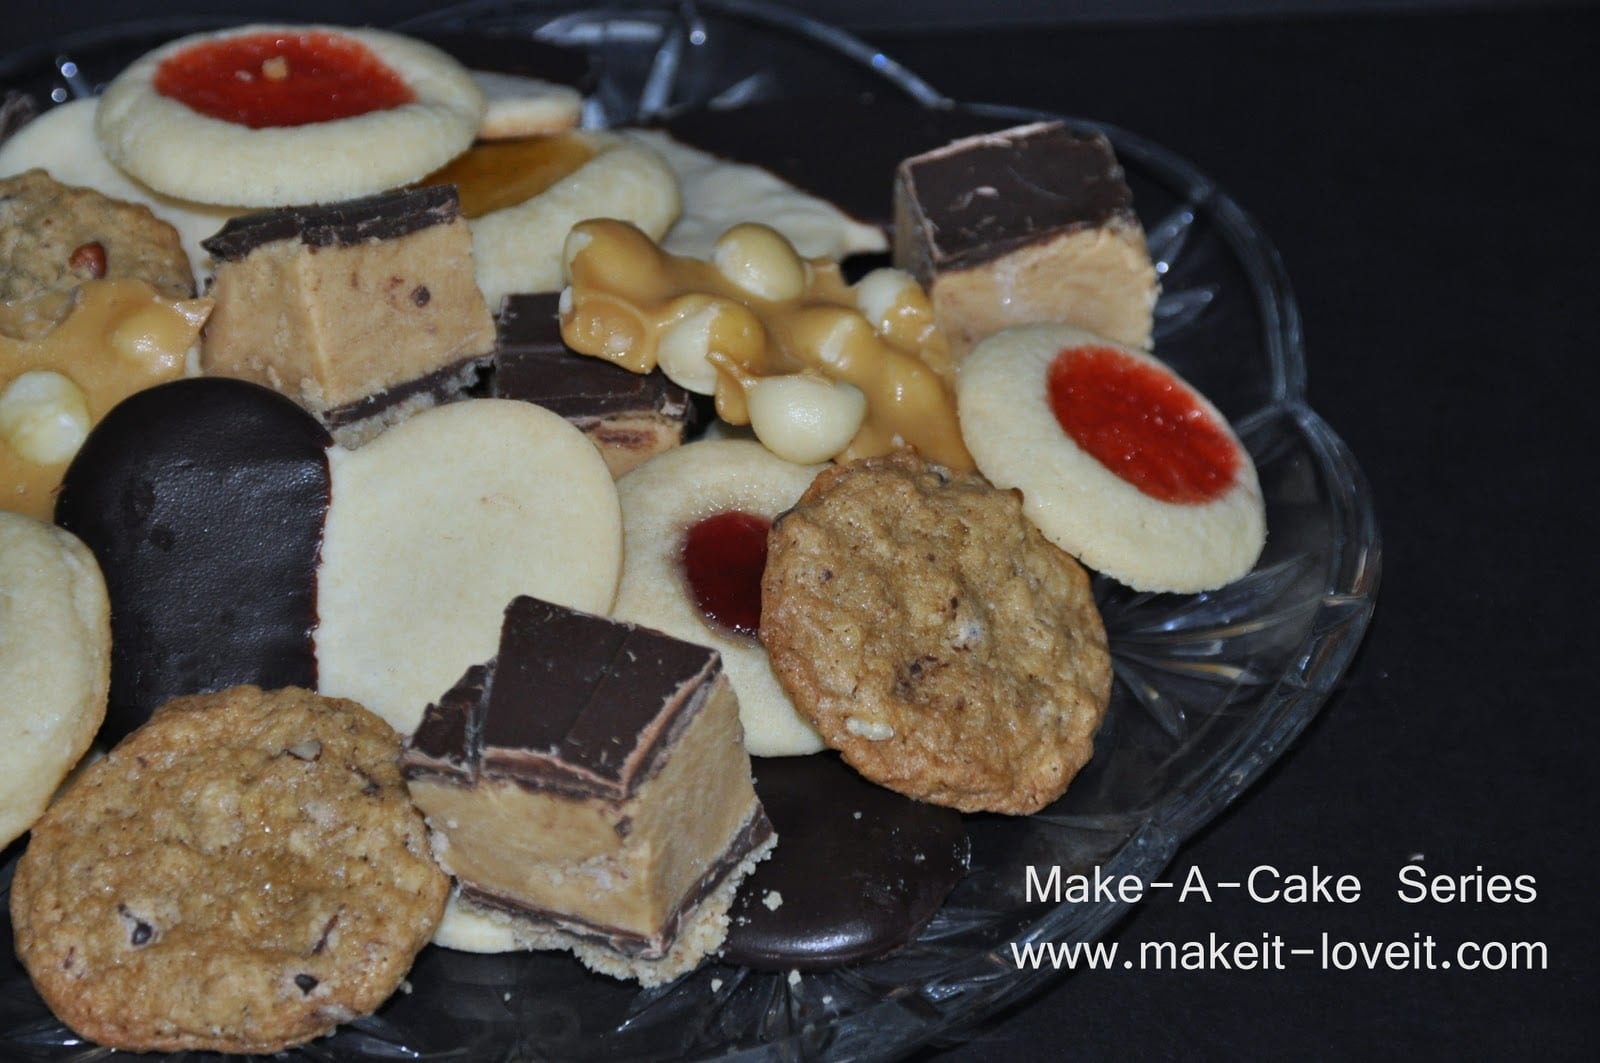 Make-a-Cake Series: Christmas Cookie Tradition……and a FAREWELL!